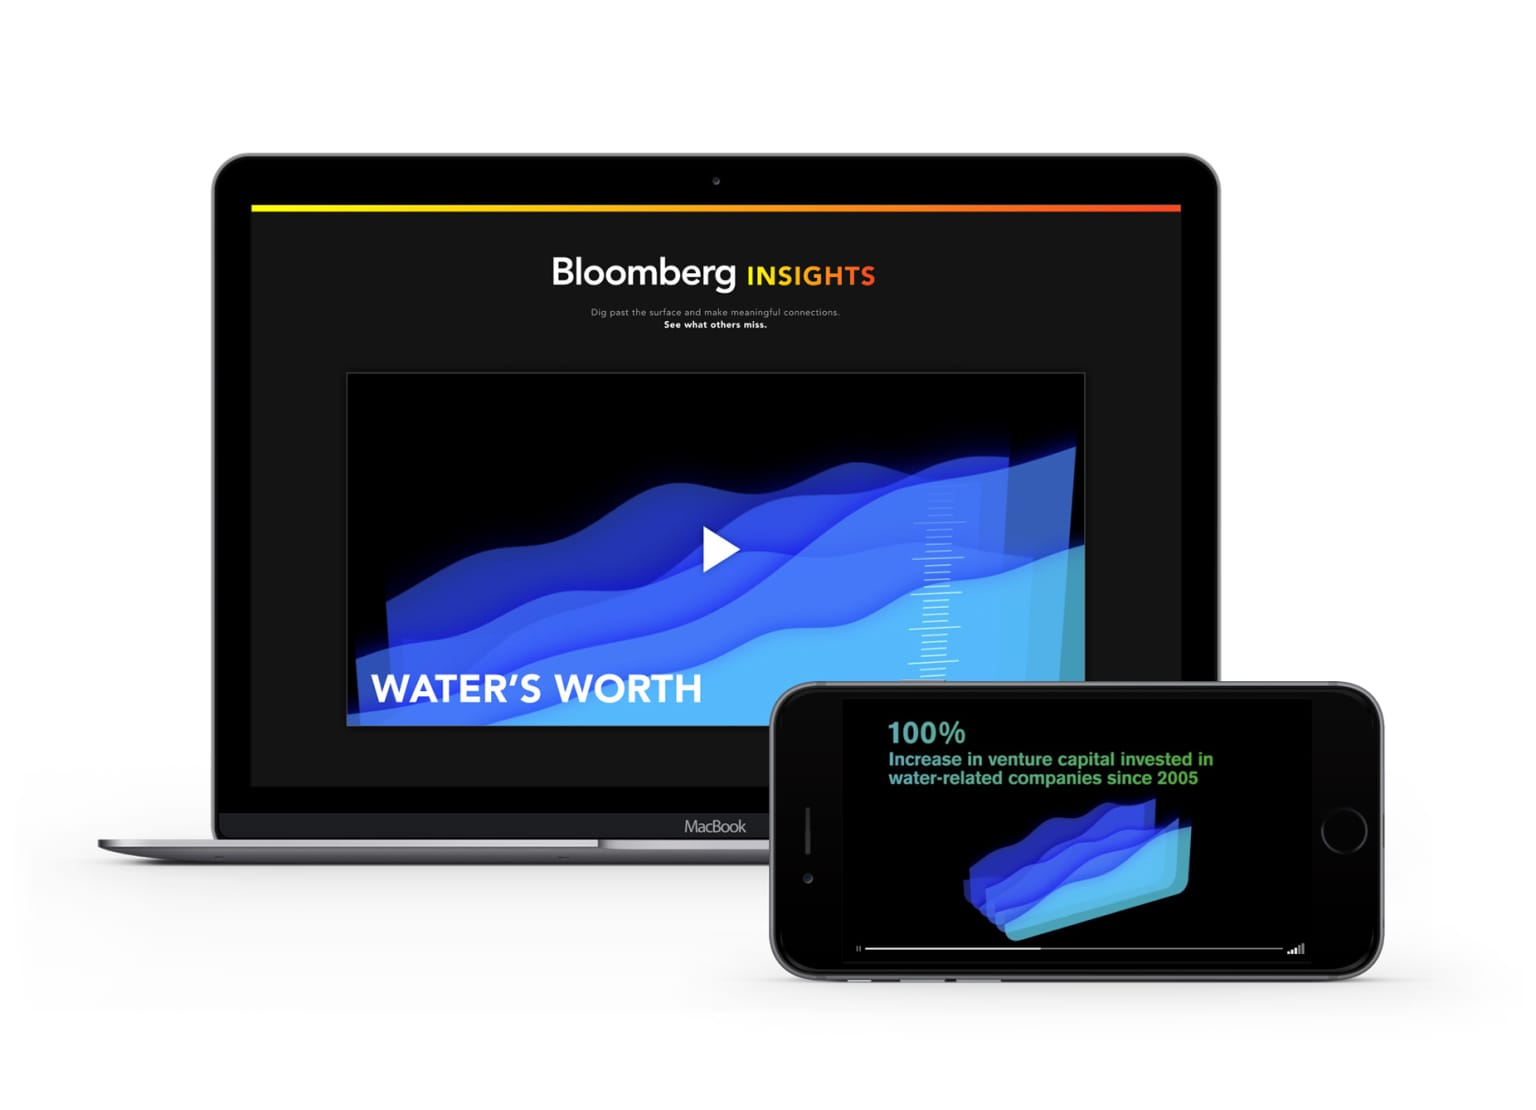 Bloomberg Insights